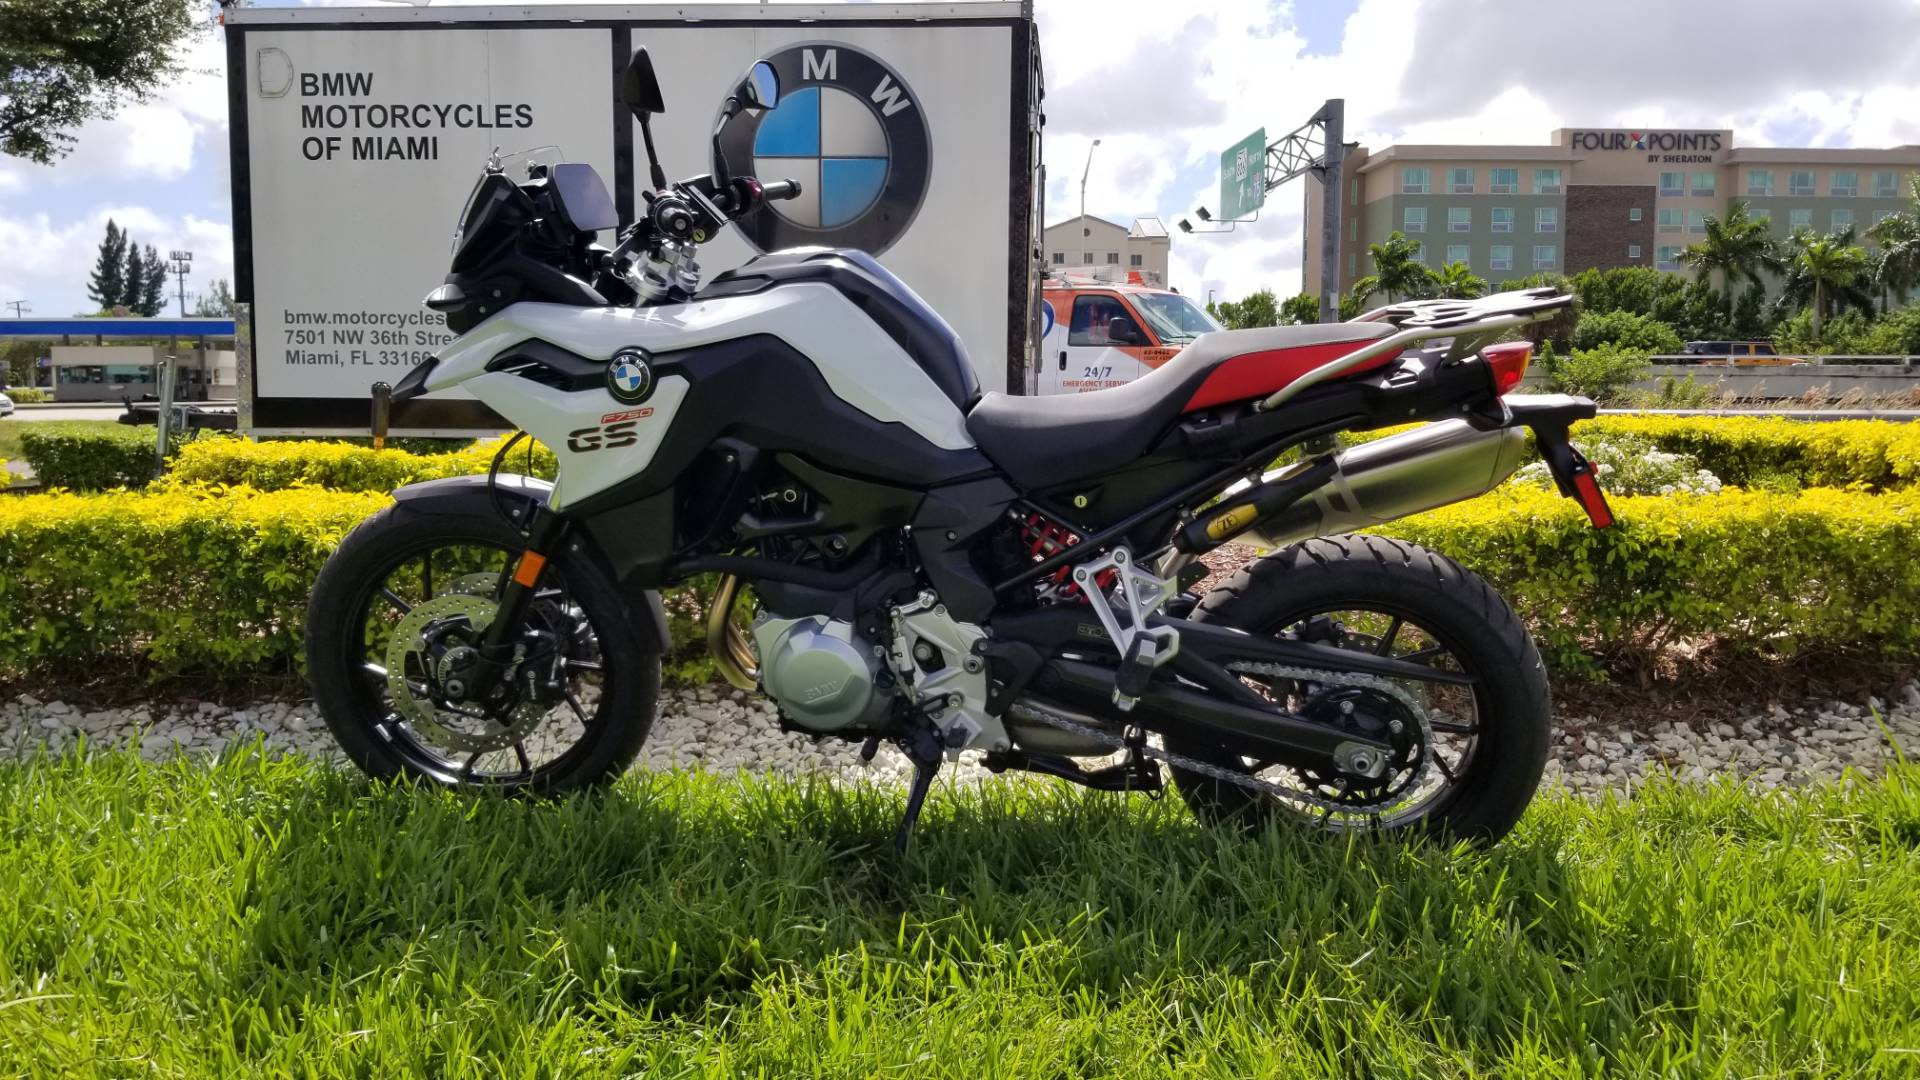 new 2019 bmw f 750 gs motorcycles in miami fl